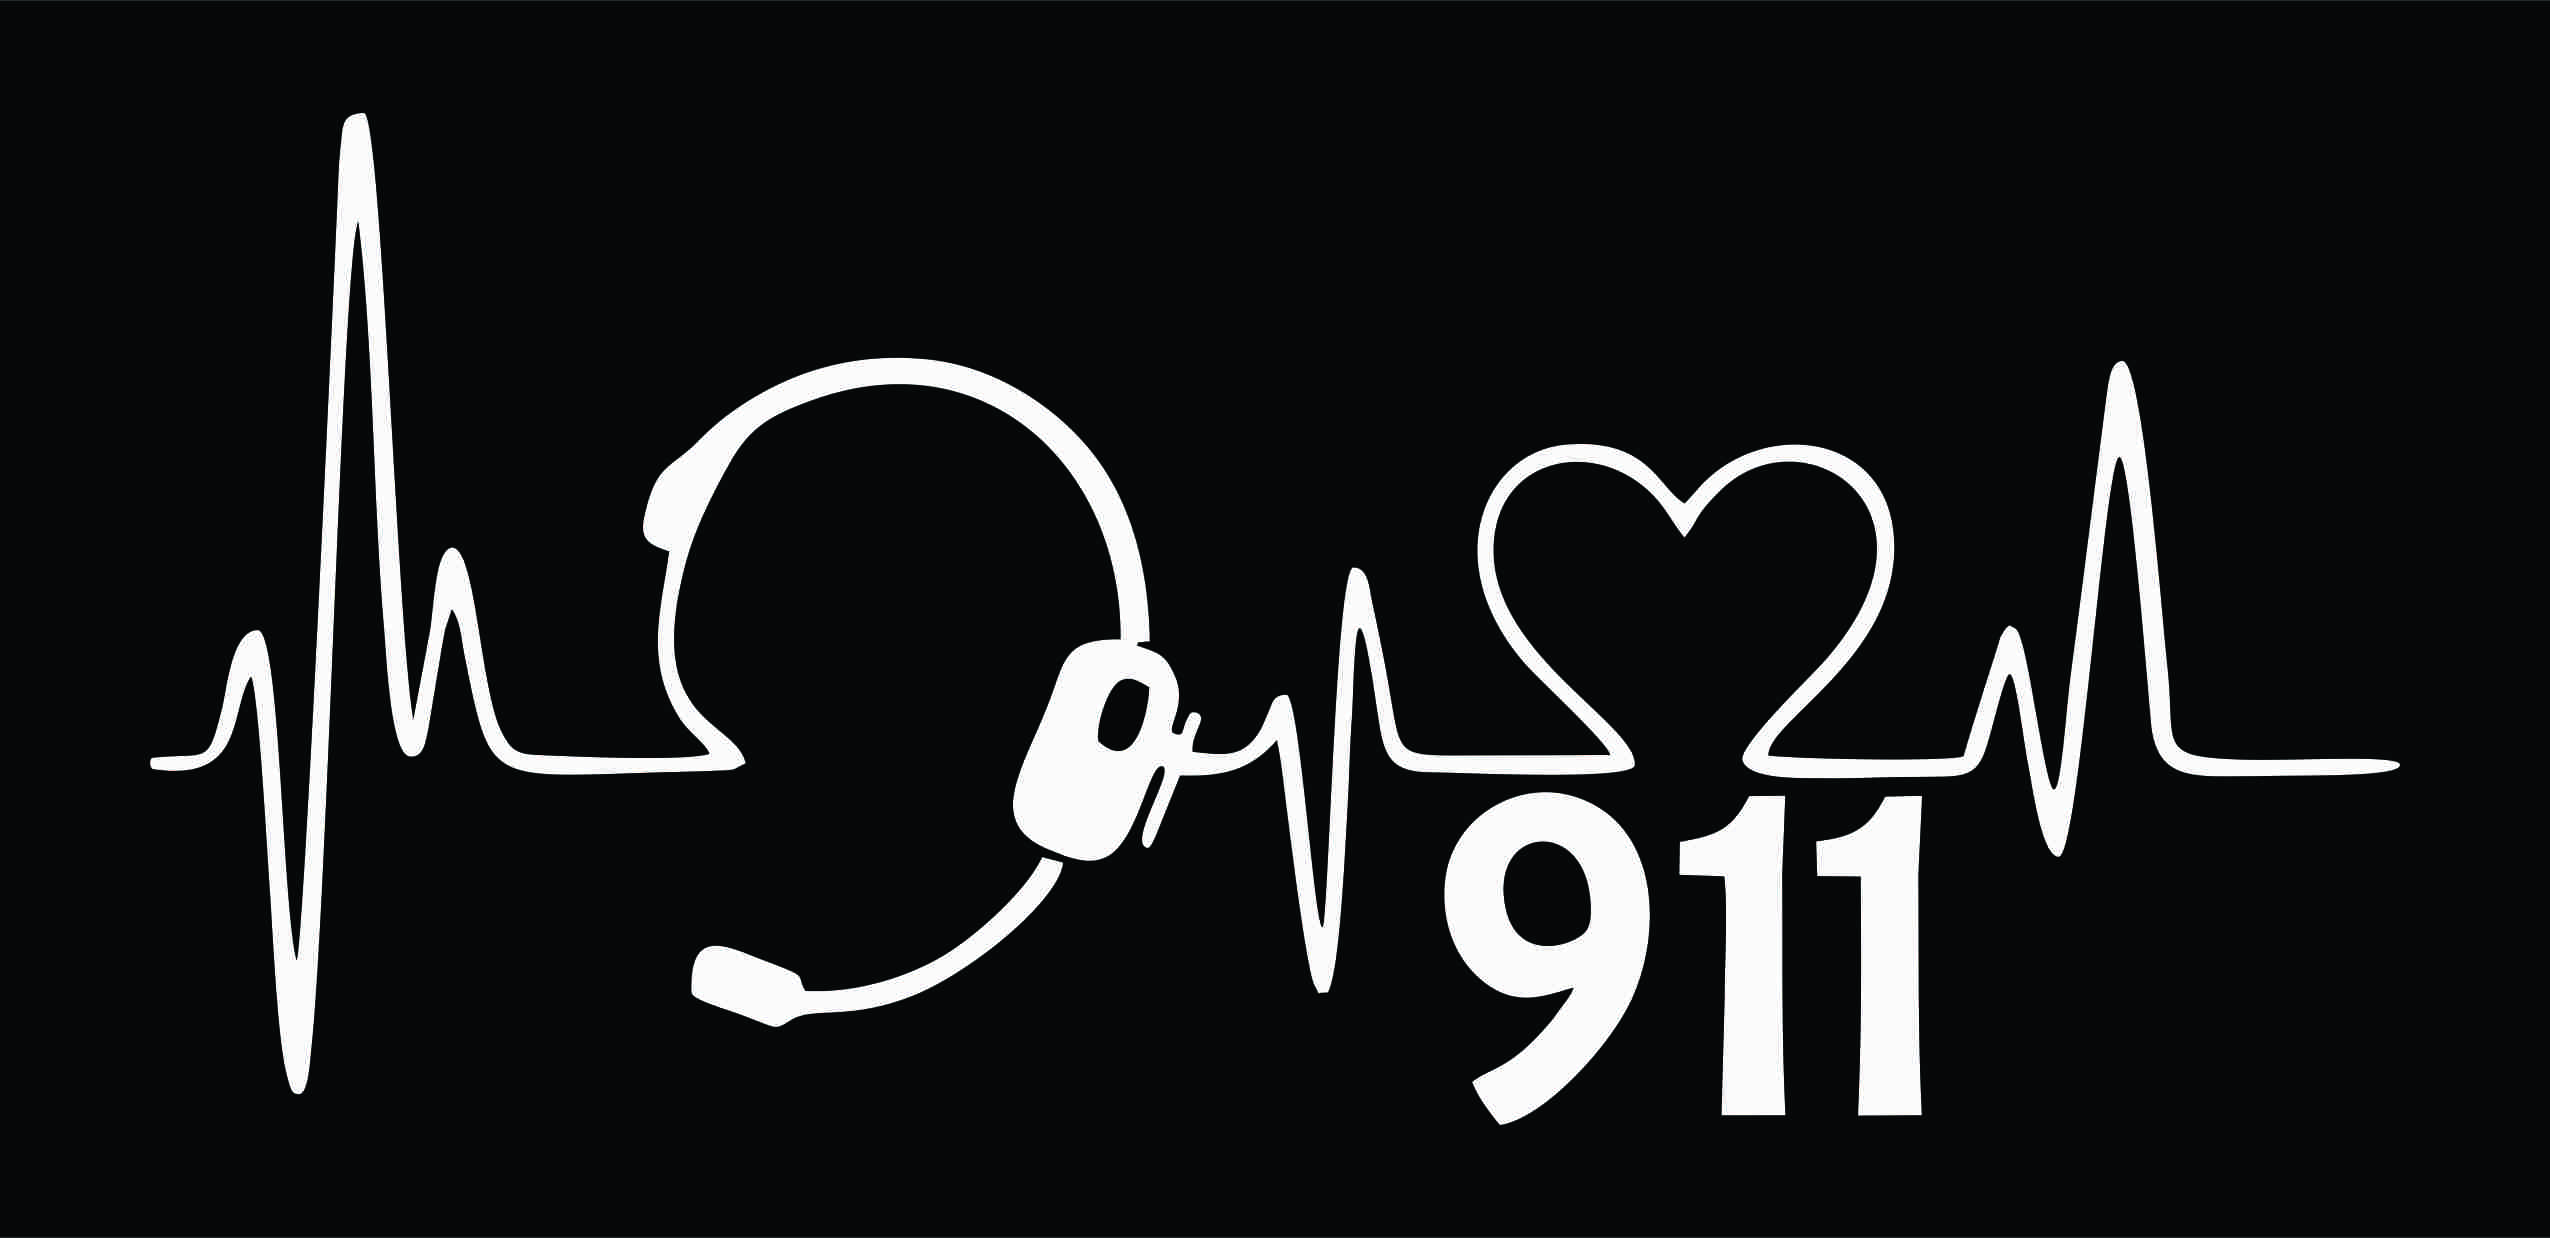 Heartbeat 911 Dispatcher Personalized Printed Backpack